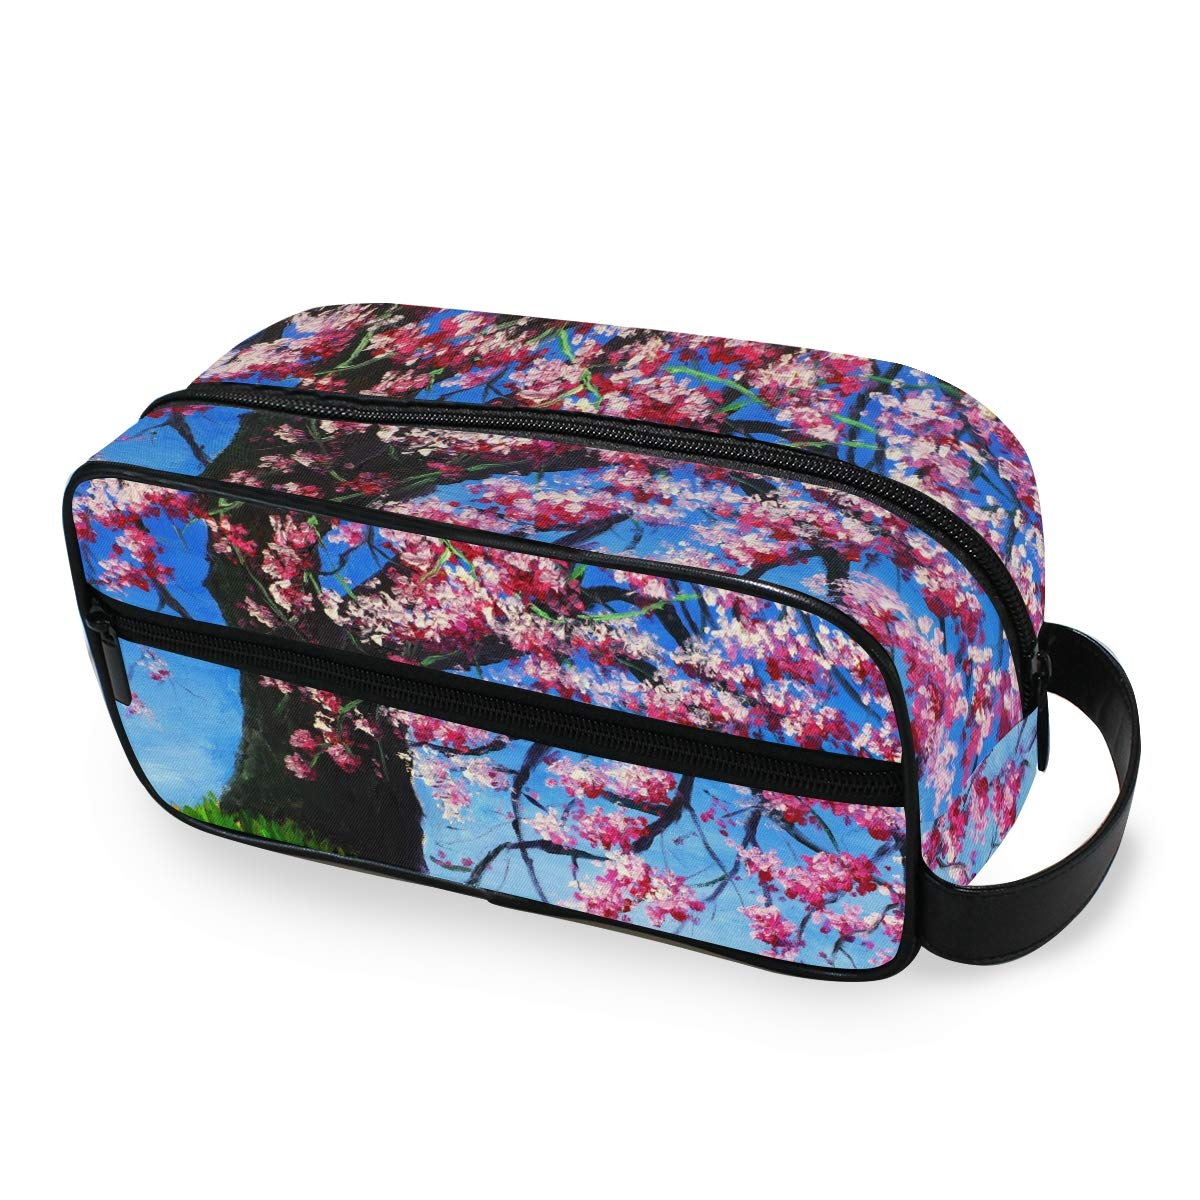 AKIOG Travel Cosmetic Bag Hanging Japanese Cherry Blossom Floral Organizer Makeup Bags Professional Small Toiletry Bags Portable Storage Bag for Kids Women.